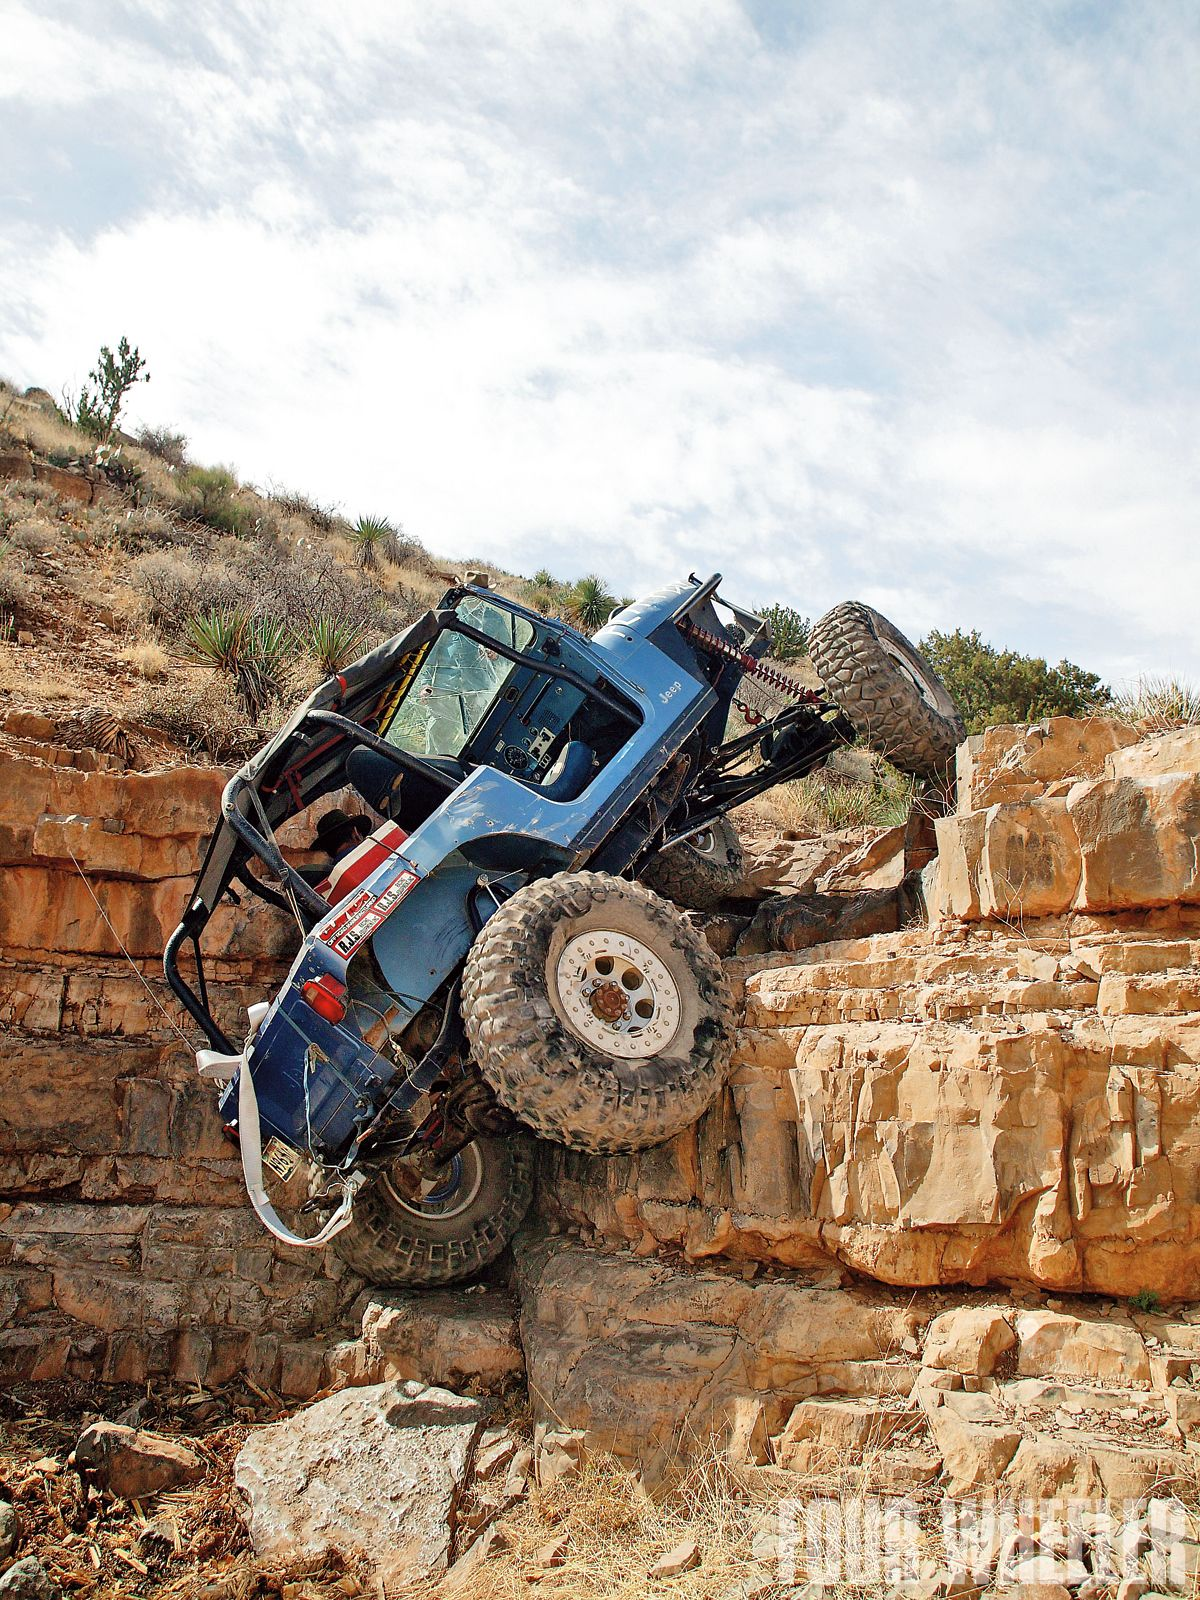 Jeep Rock Crawler 1000 Images About Jeep On Pinterest Black Jeep Promised Land